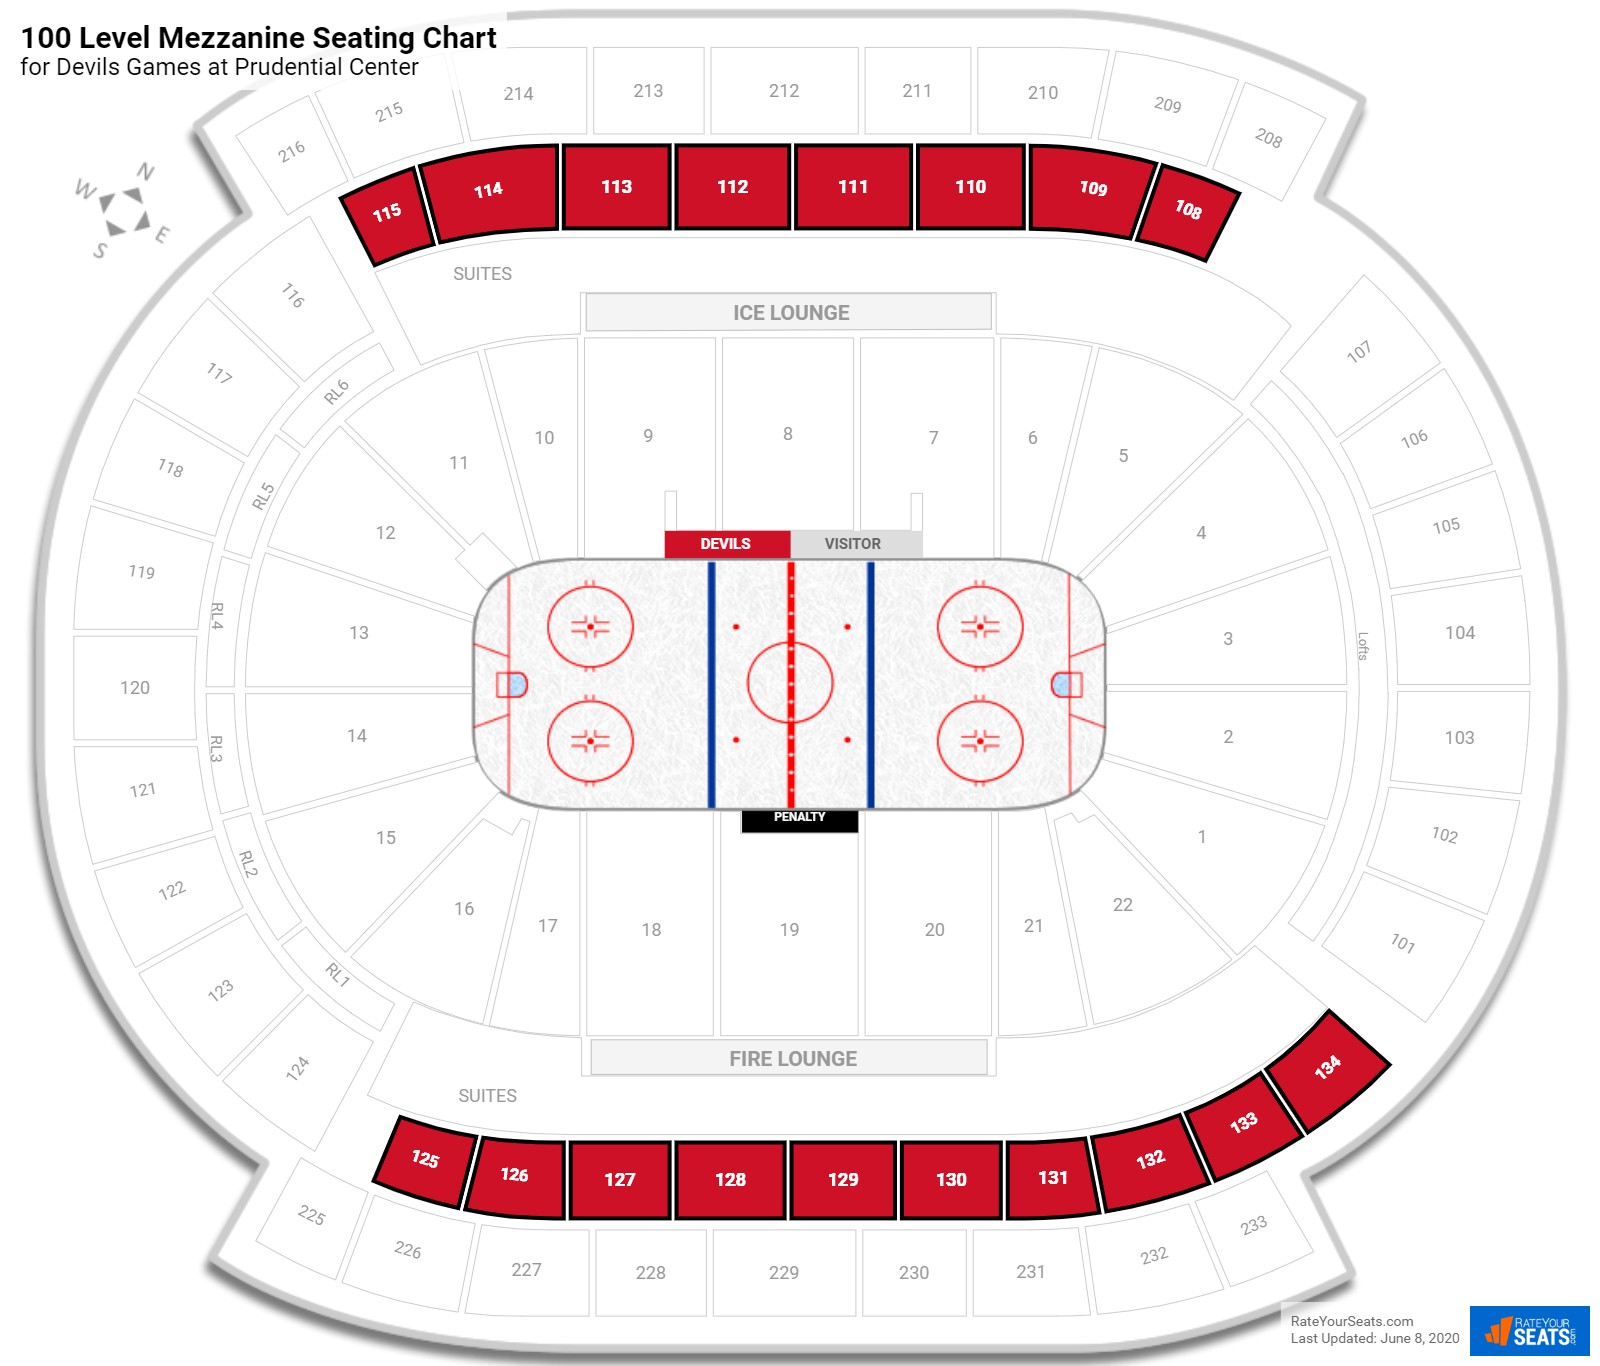 Prudential Center Mezzanine Level Side seating chart